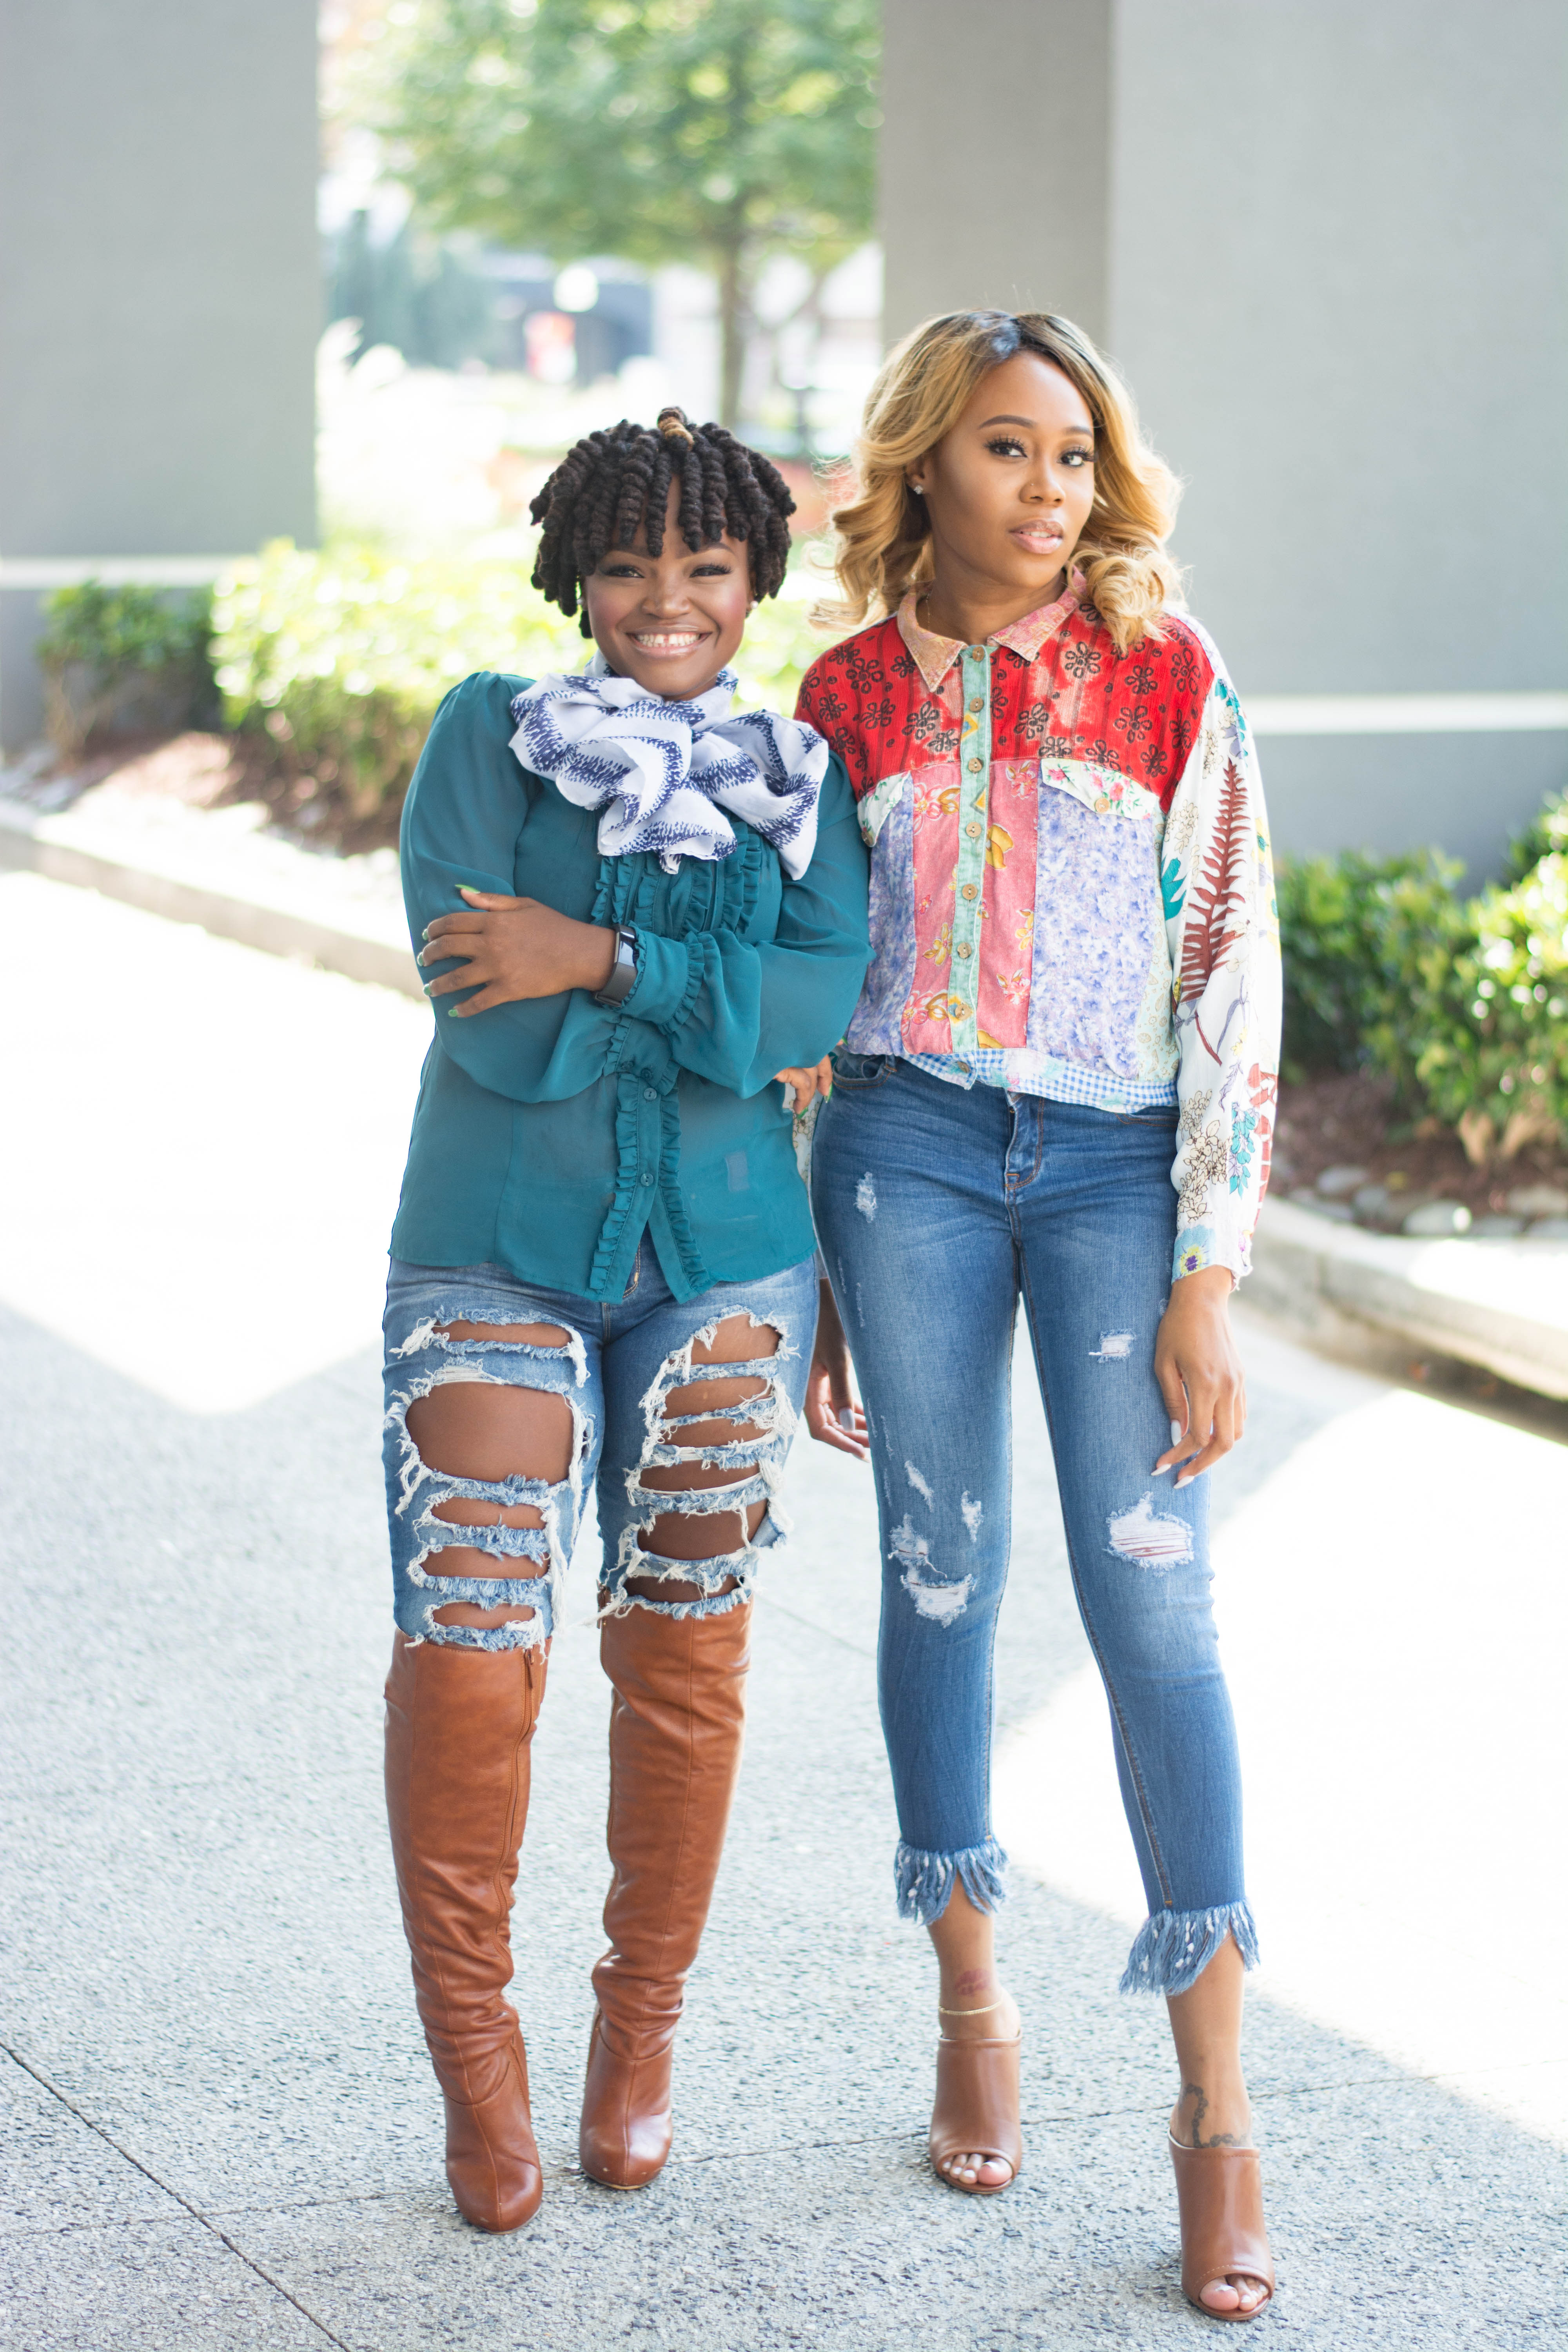 MORE SUMMER FALL TRANSITION LOOKS WITH JOJO